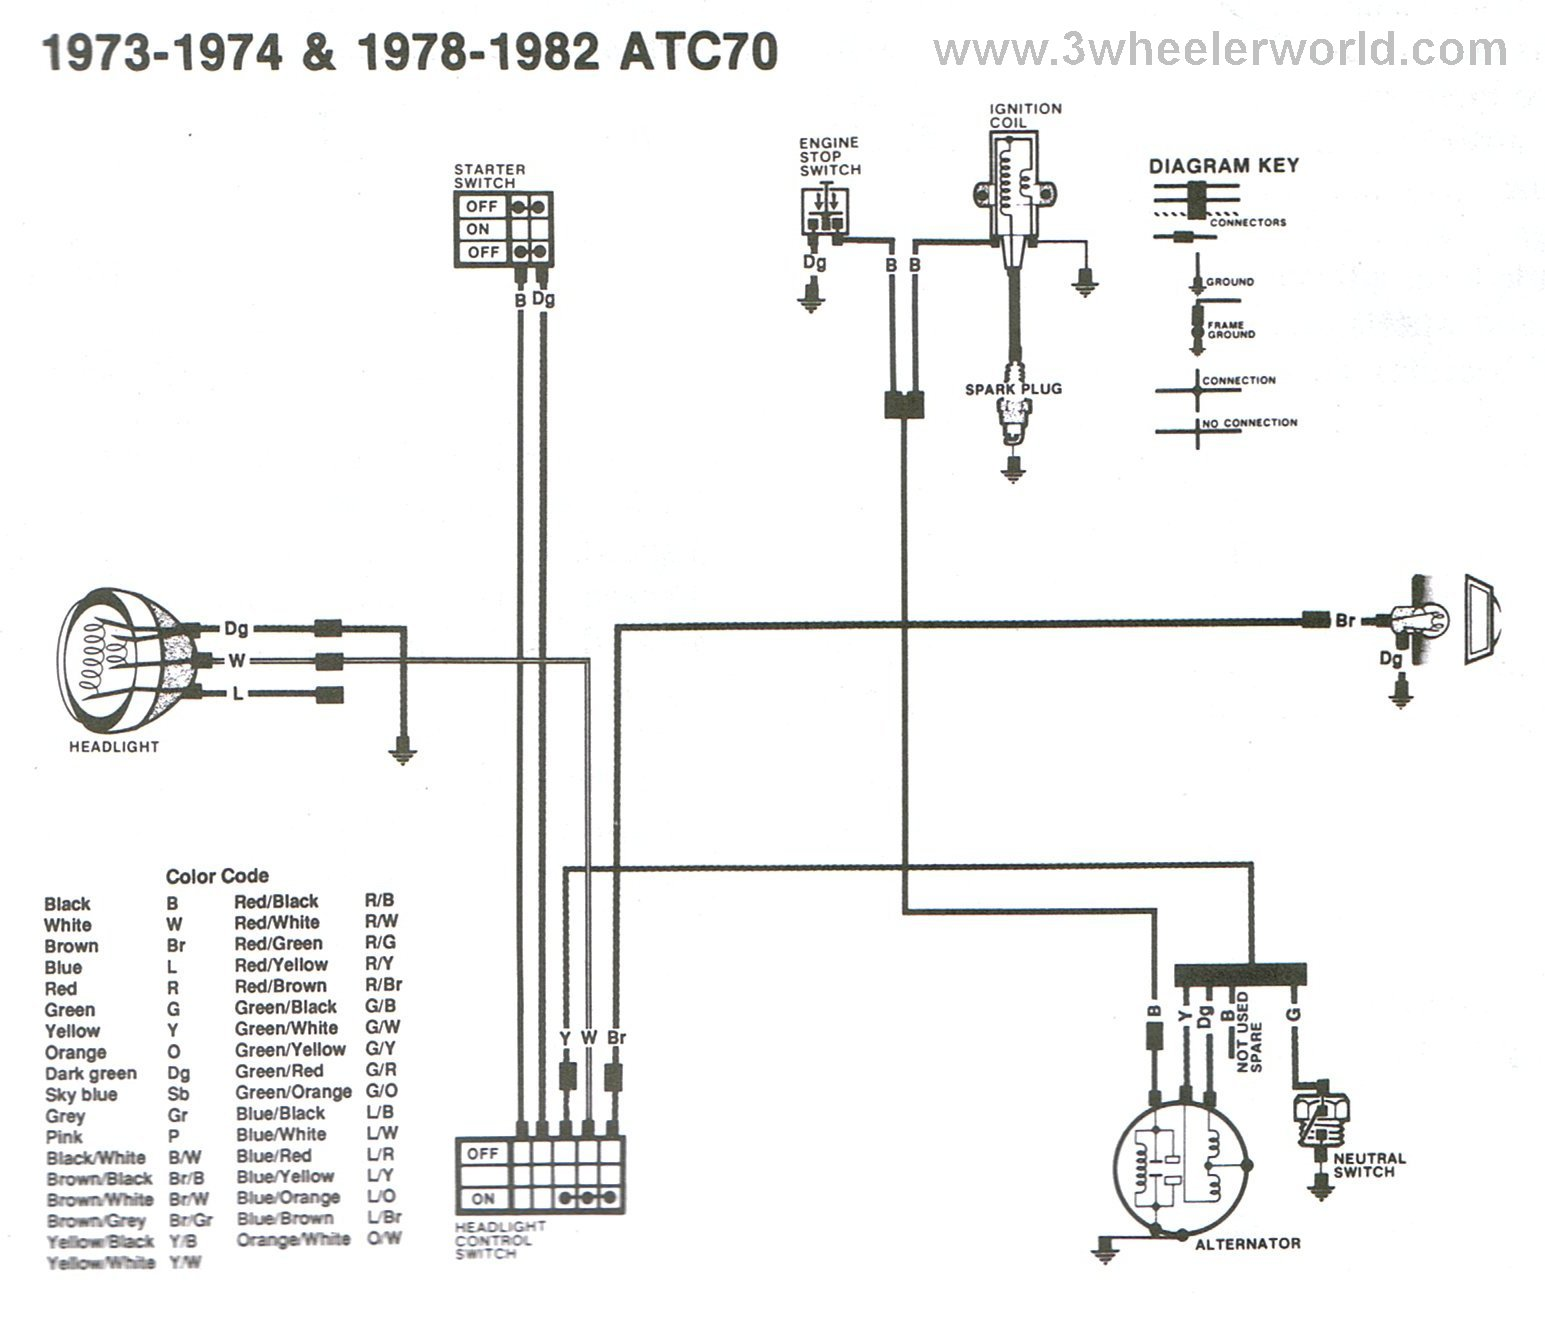 3 wheeler world tech help honda wiring diagrams atc70 1973 1974 1978 thru 1982 swarovskicordoba Image collections